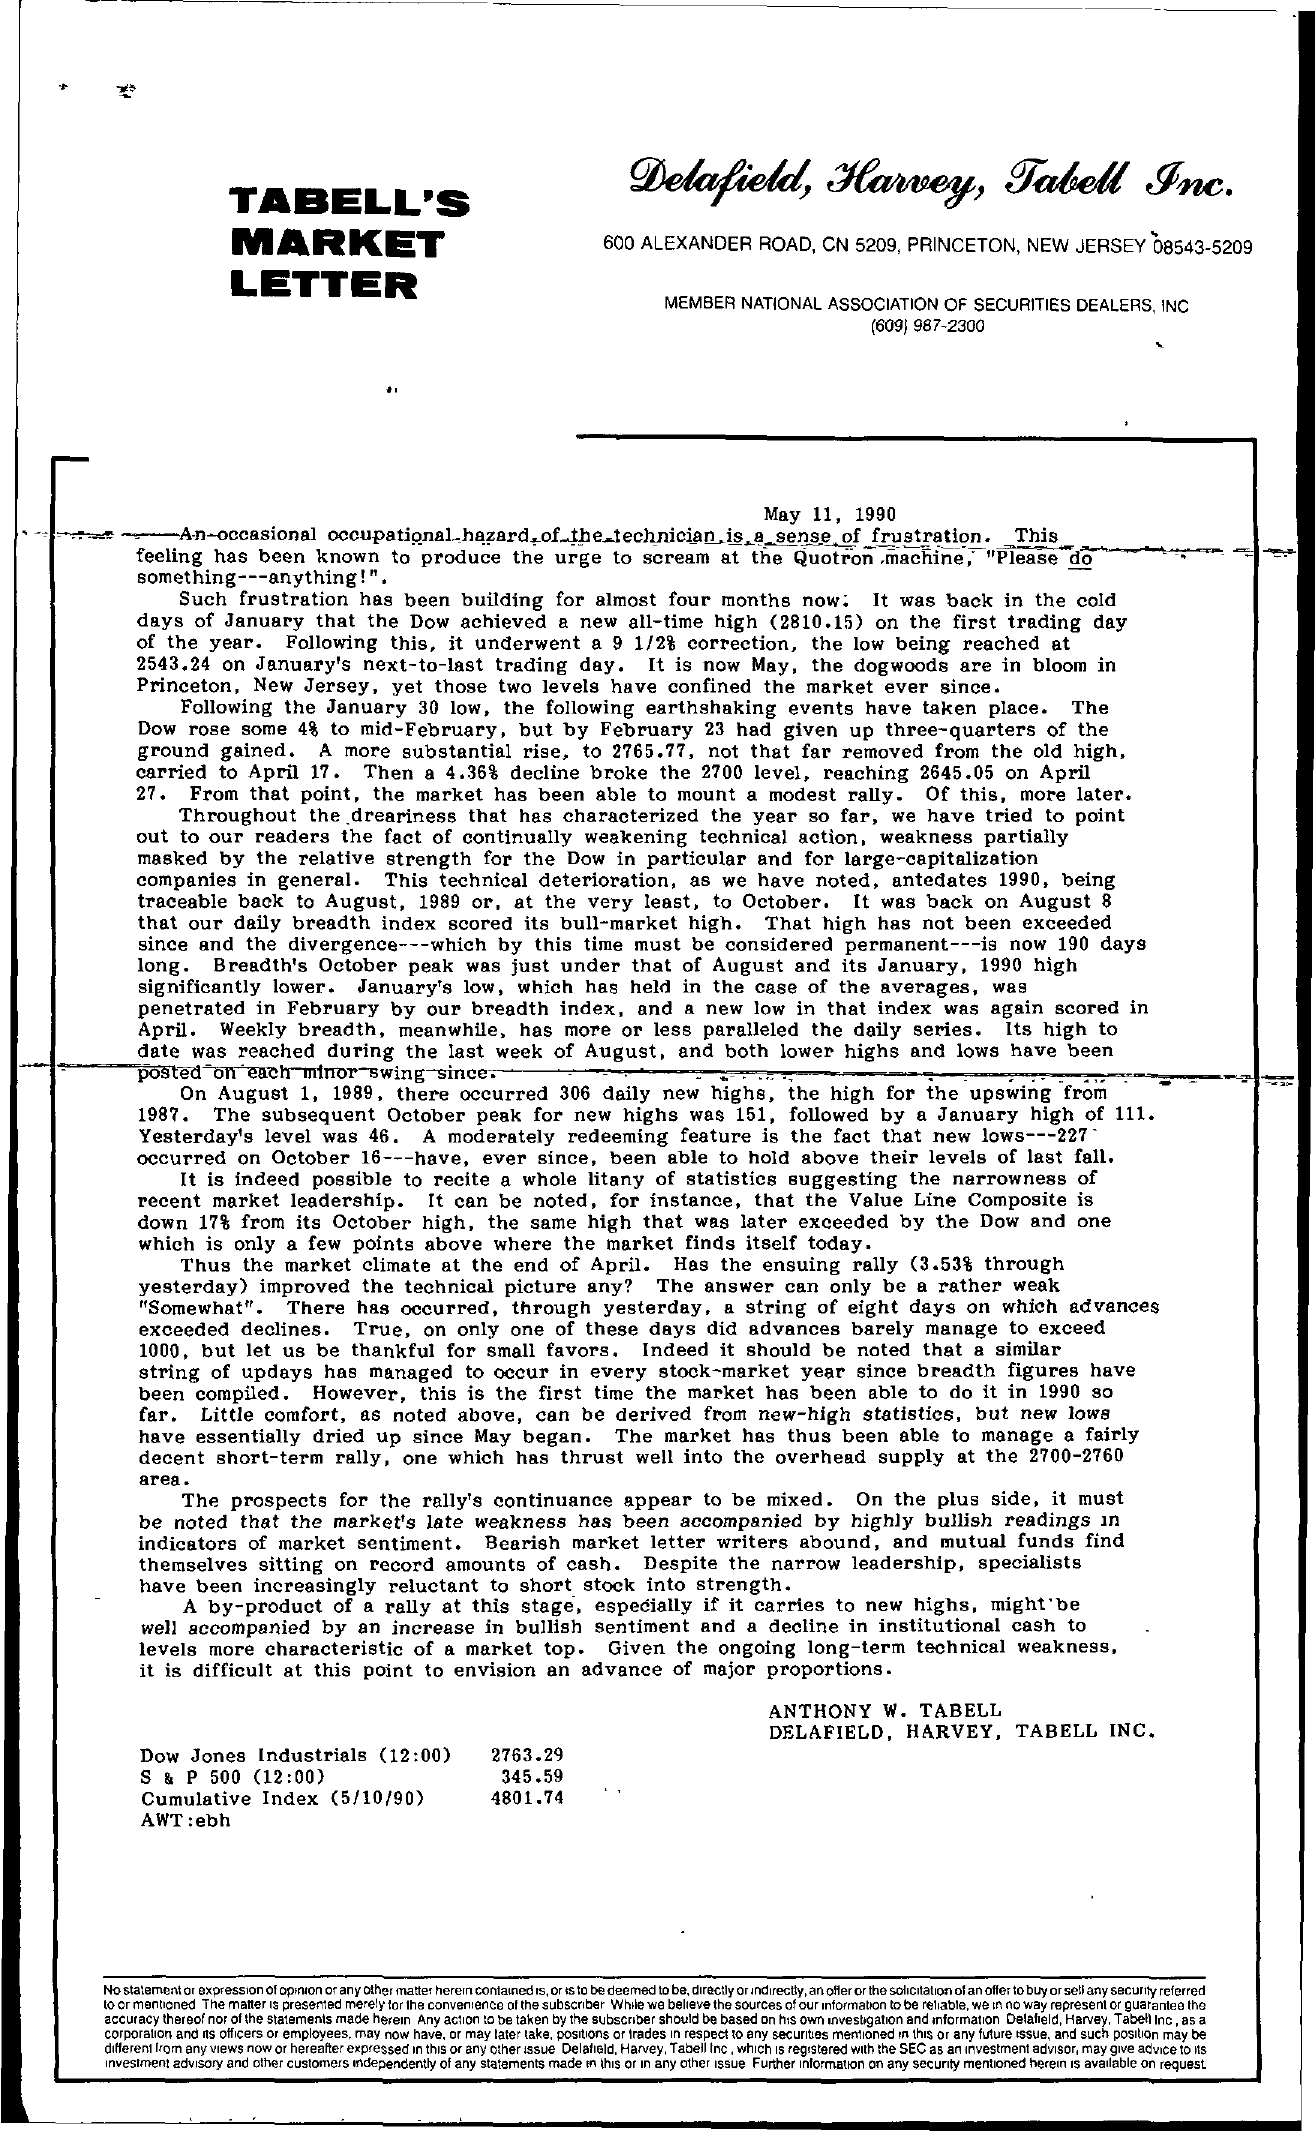 Tabell's Market Letter - May 11, 1990